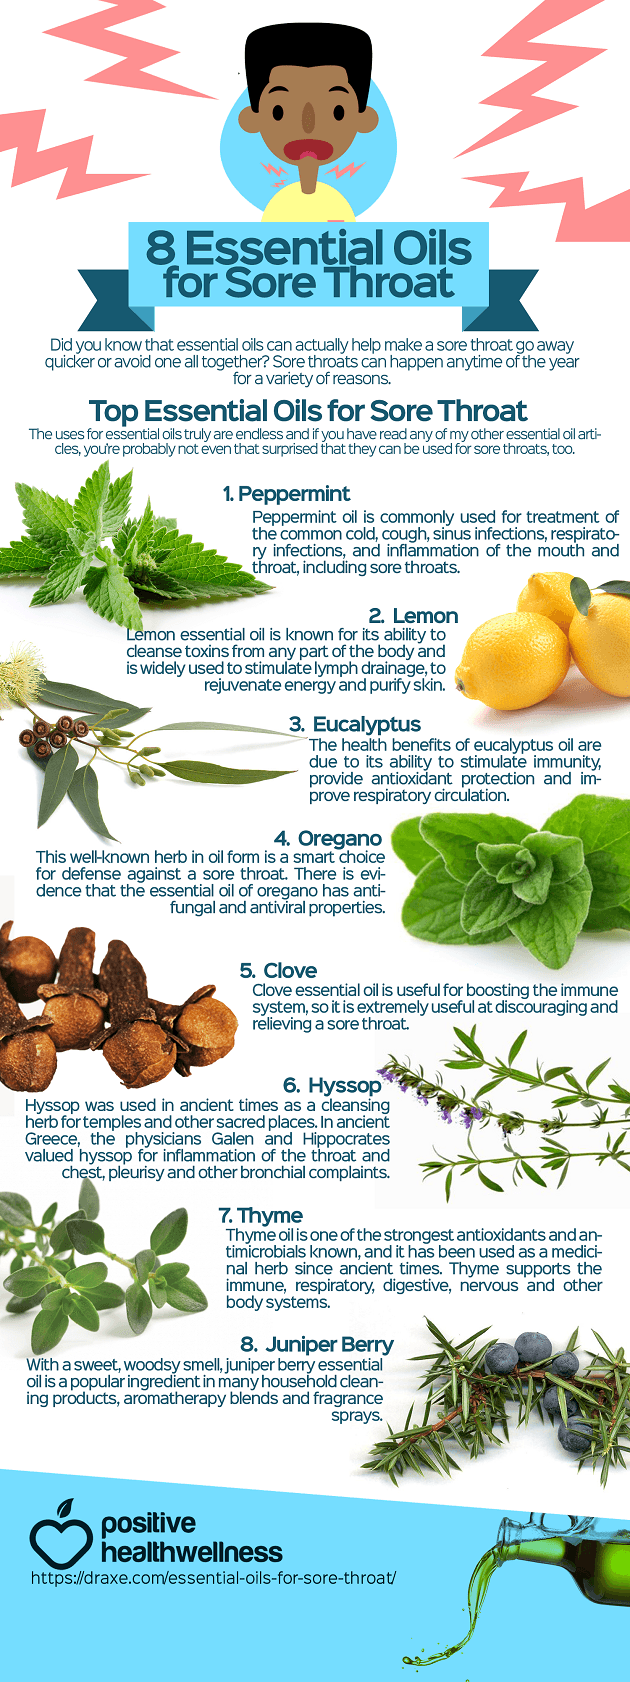 8 Essential Oils For Sore Throat